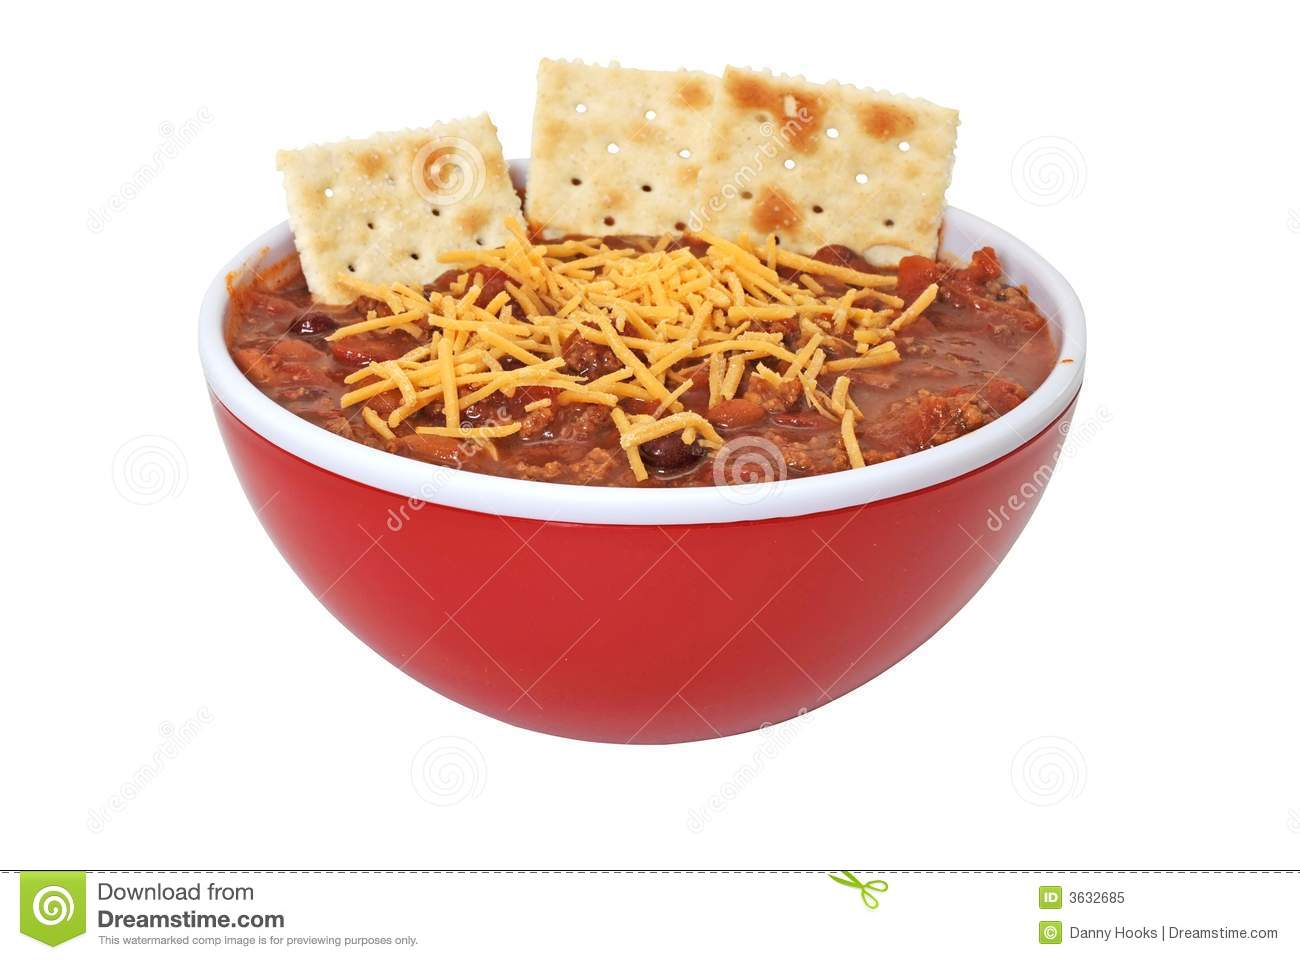 Bowl Of Hot Chili With Beans Cheese And Crackers  Isolated On White